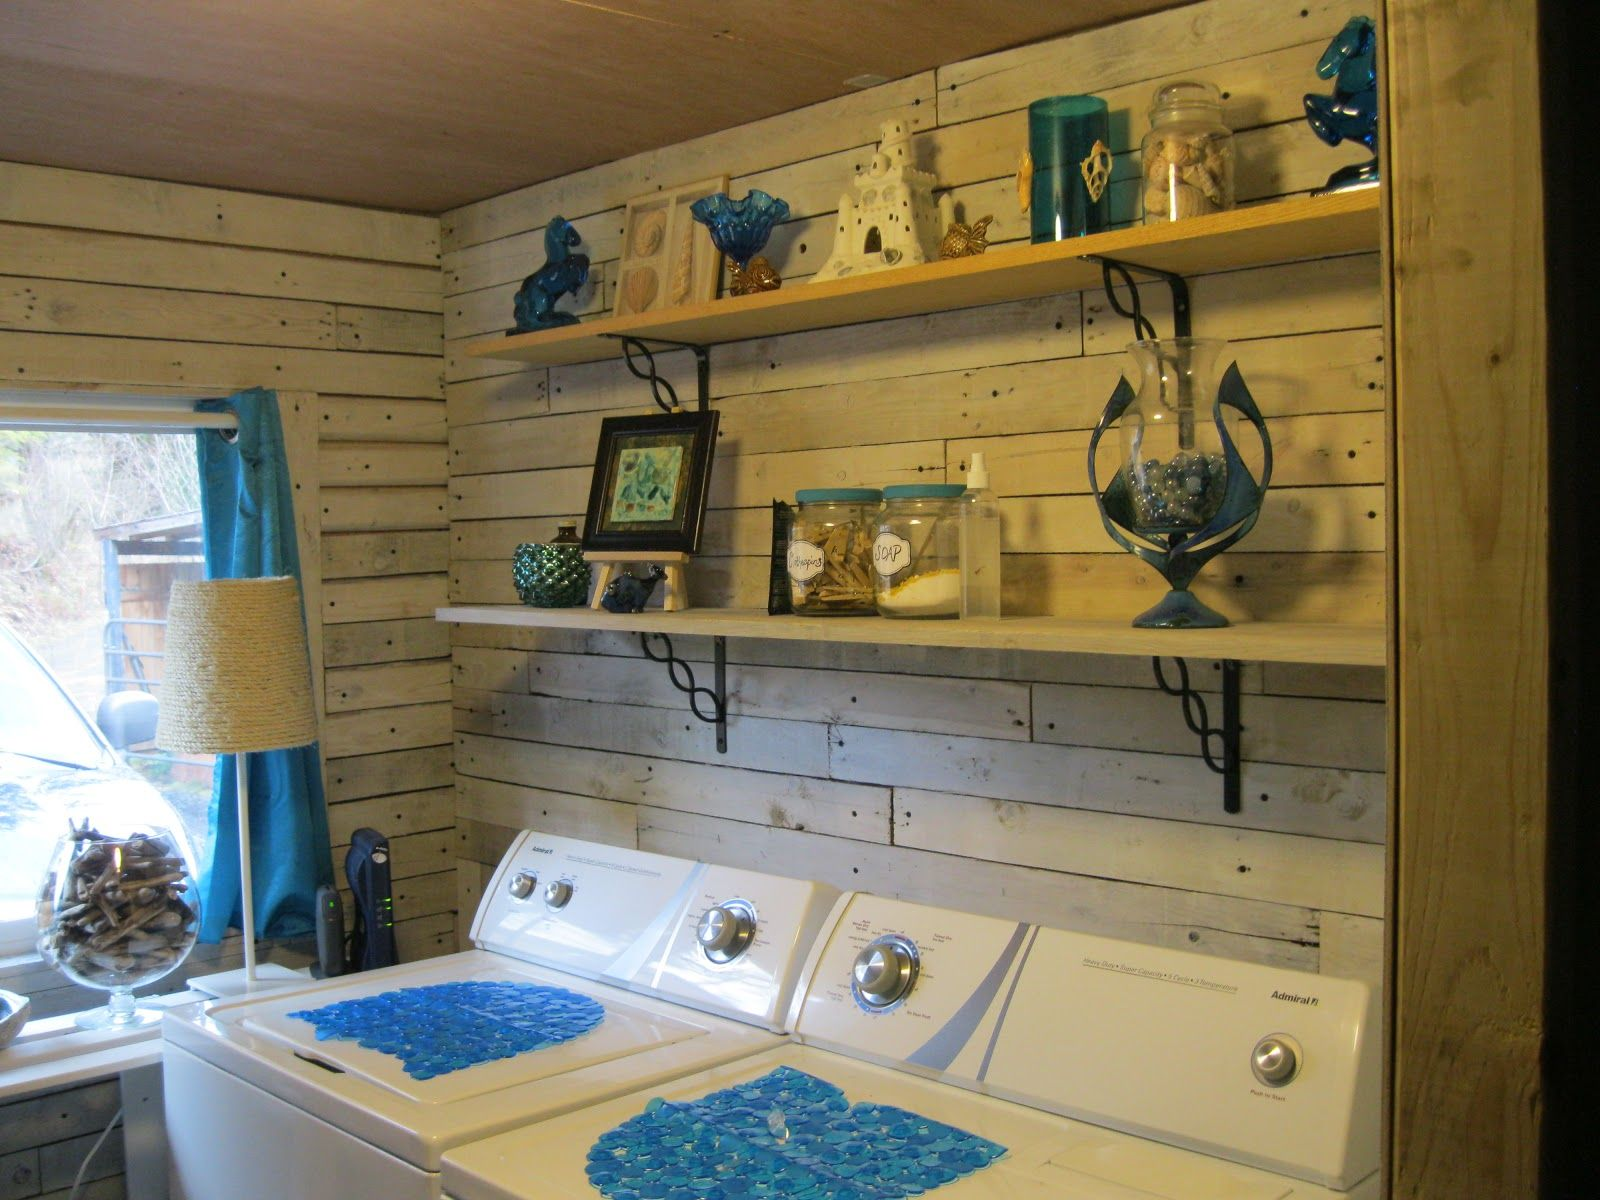 Laundry room makeover ideas for your mobile home laundry for Room makeover